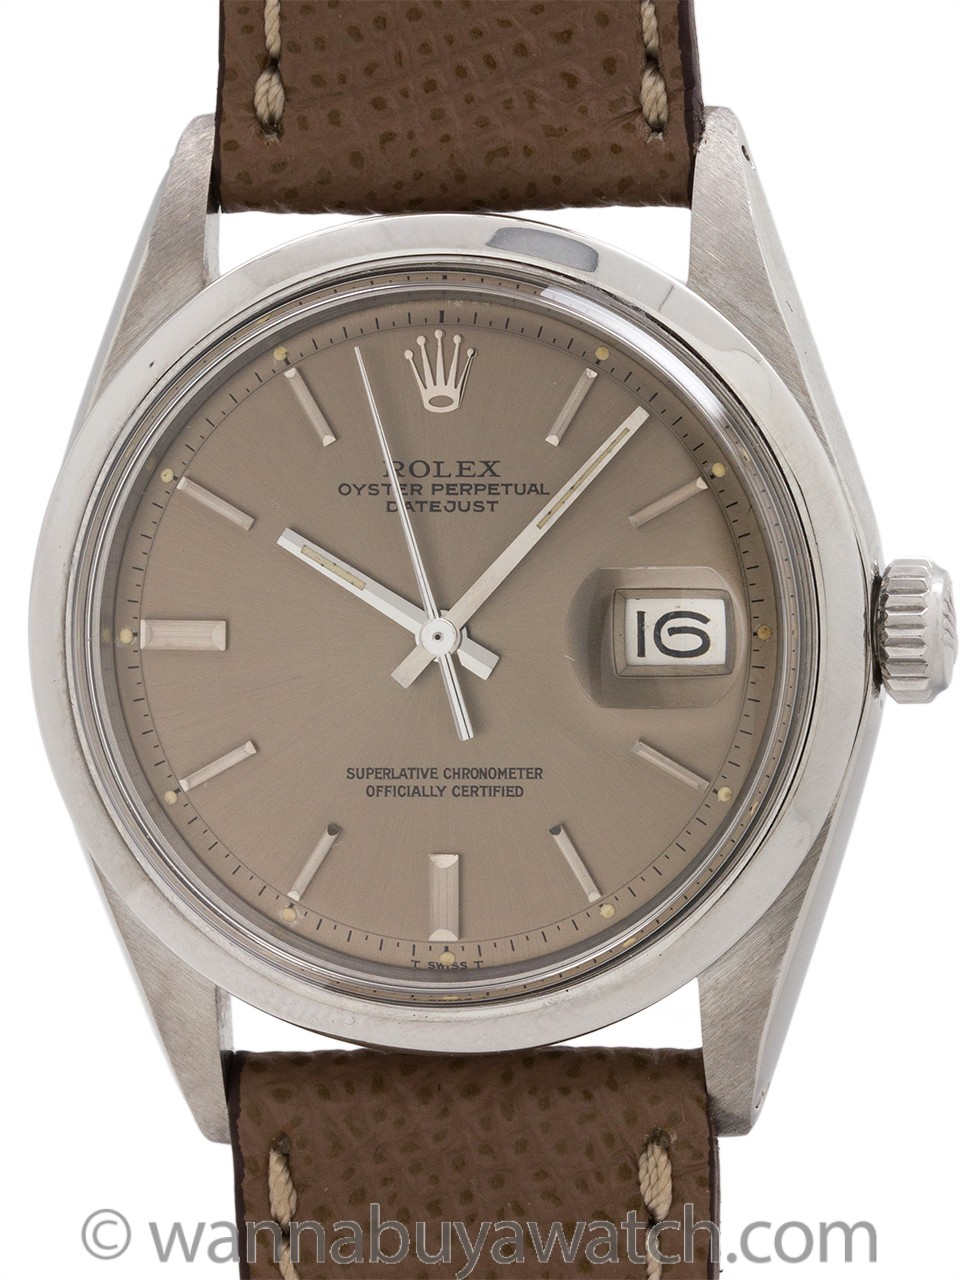 Rolex Datejust ref 1600 Smooth Bezel Taupe Dial circa 1971